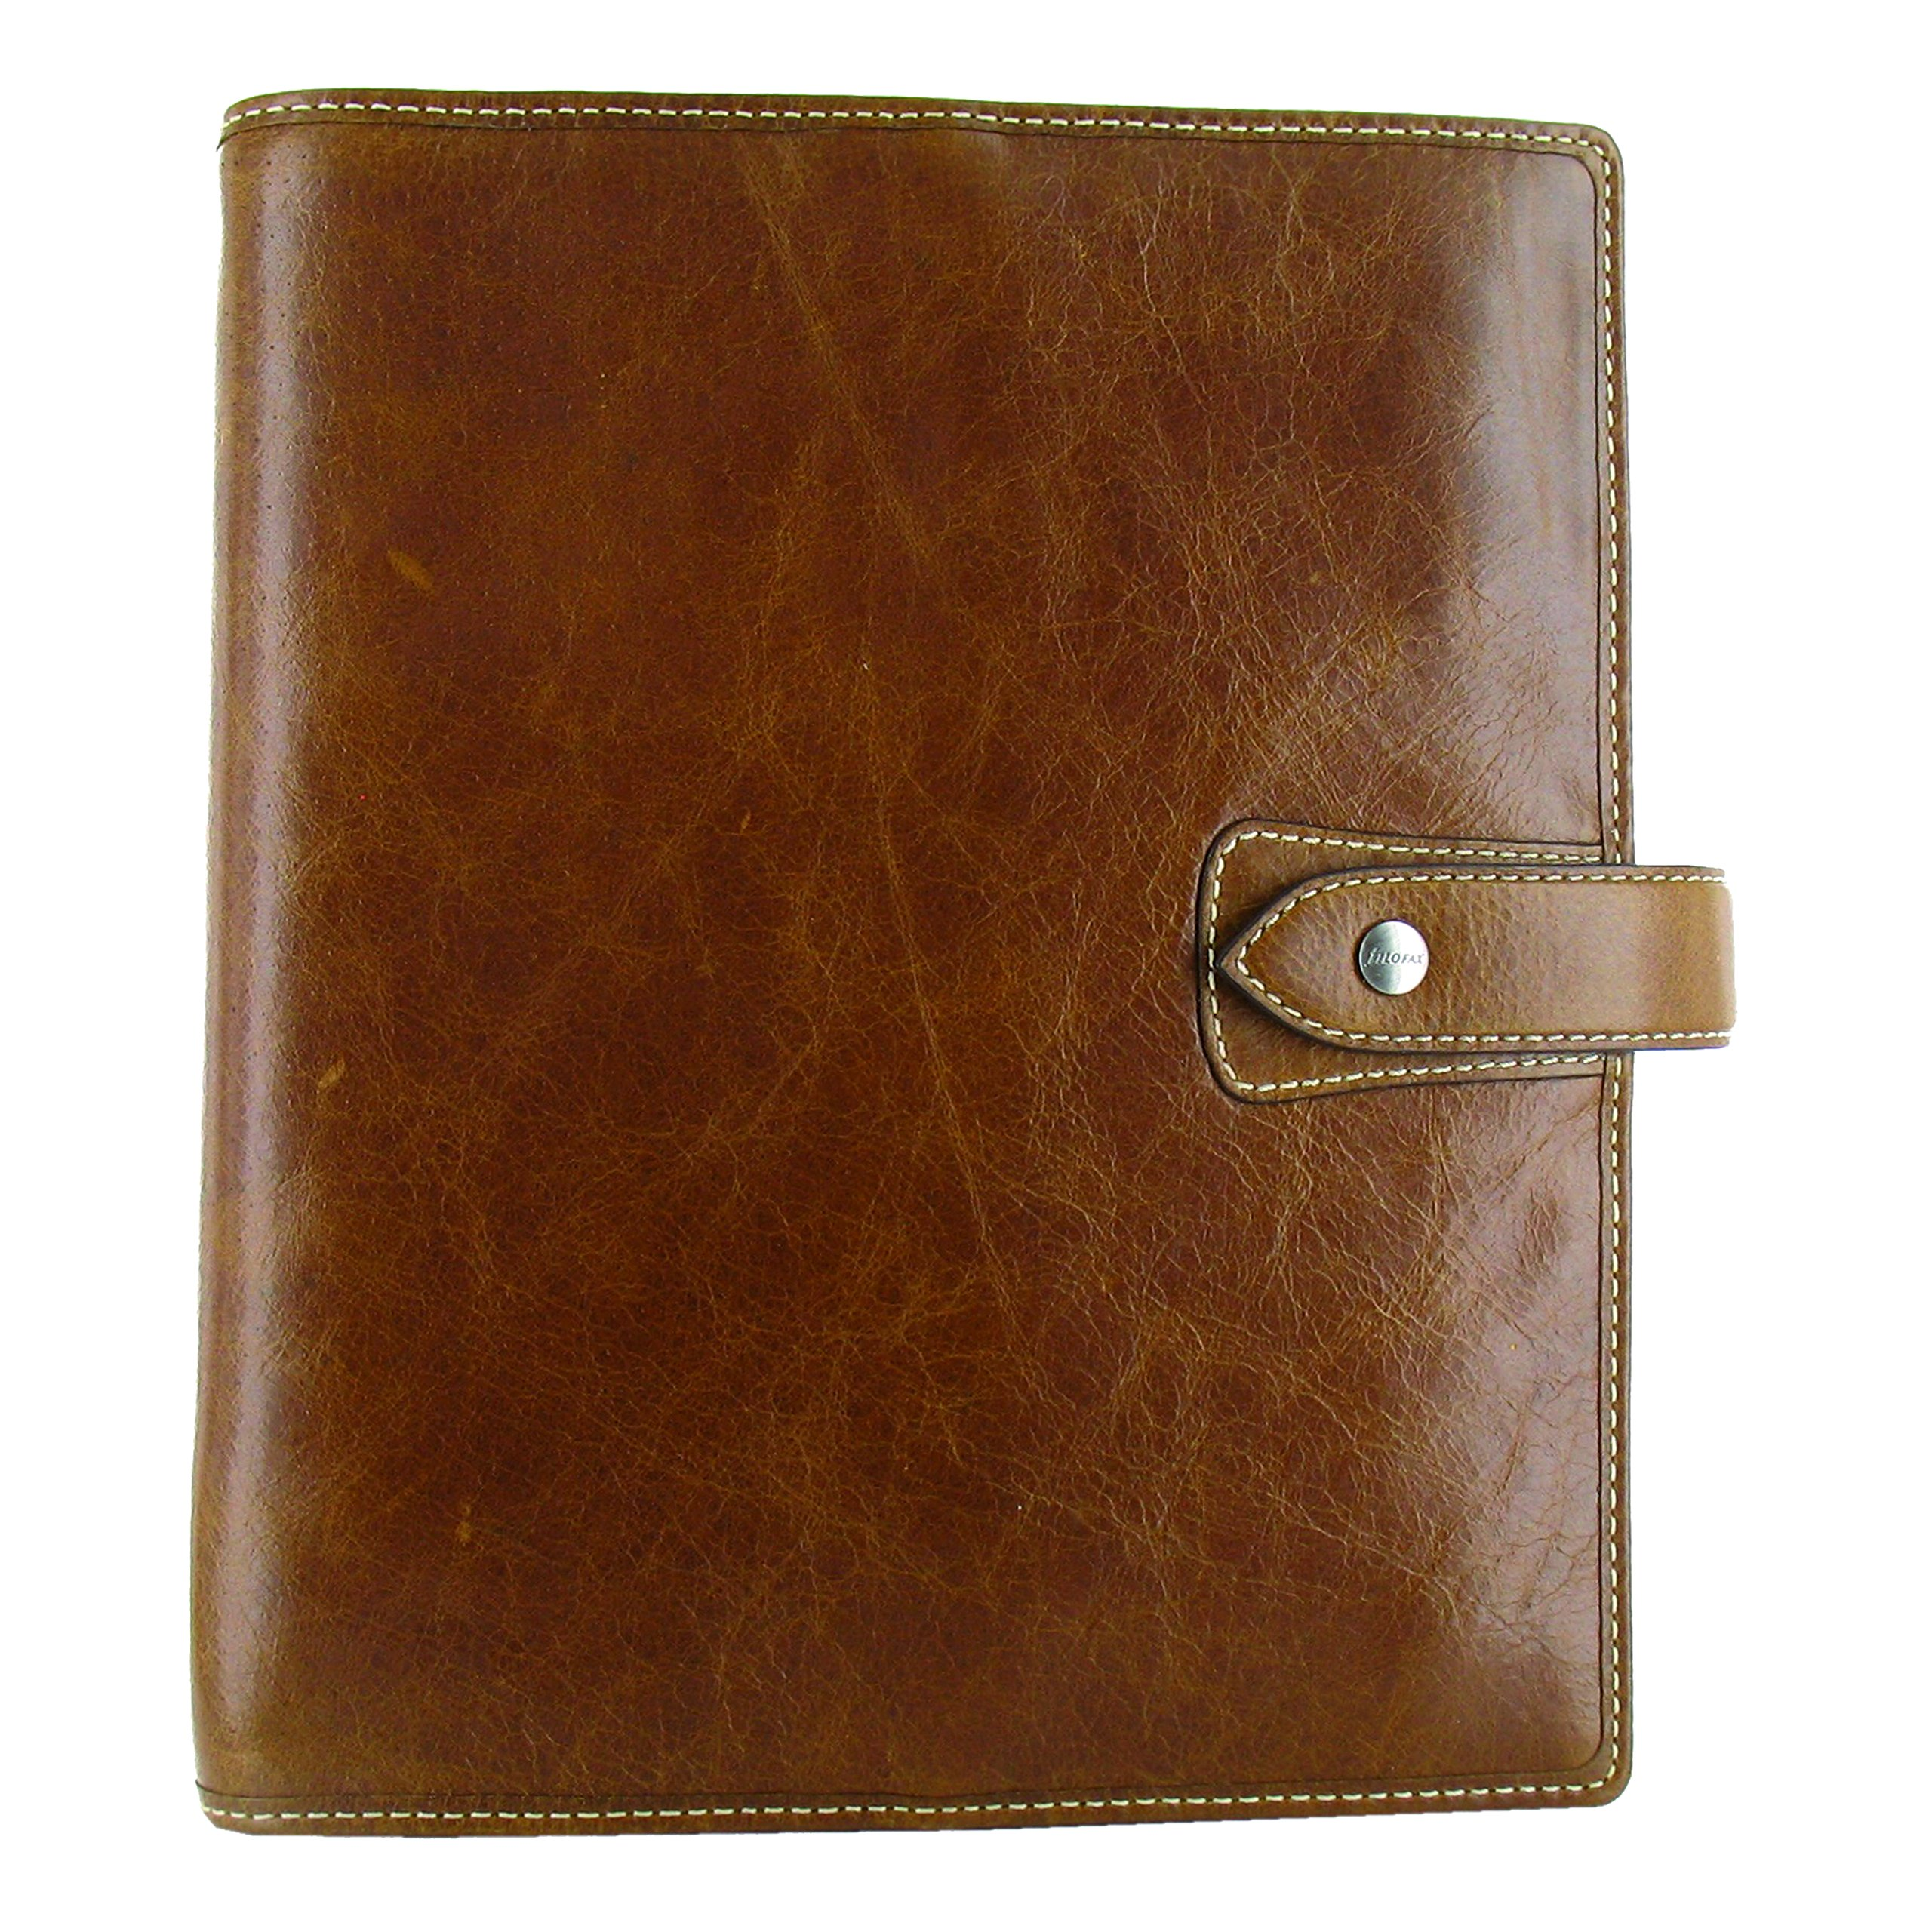 Filofax 2018 A5 Malden Organizer, Leather, Ochre, Paper Size 8.25 x 5.75 inches (C025847-18)